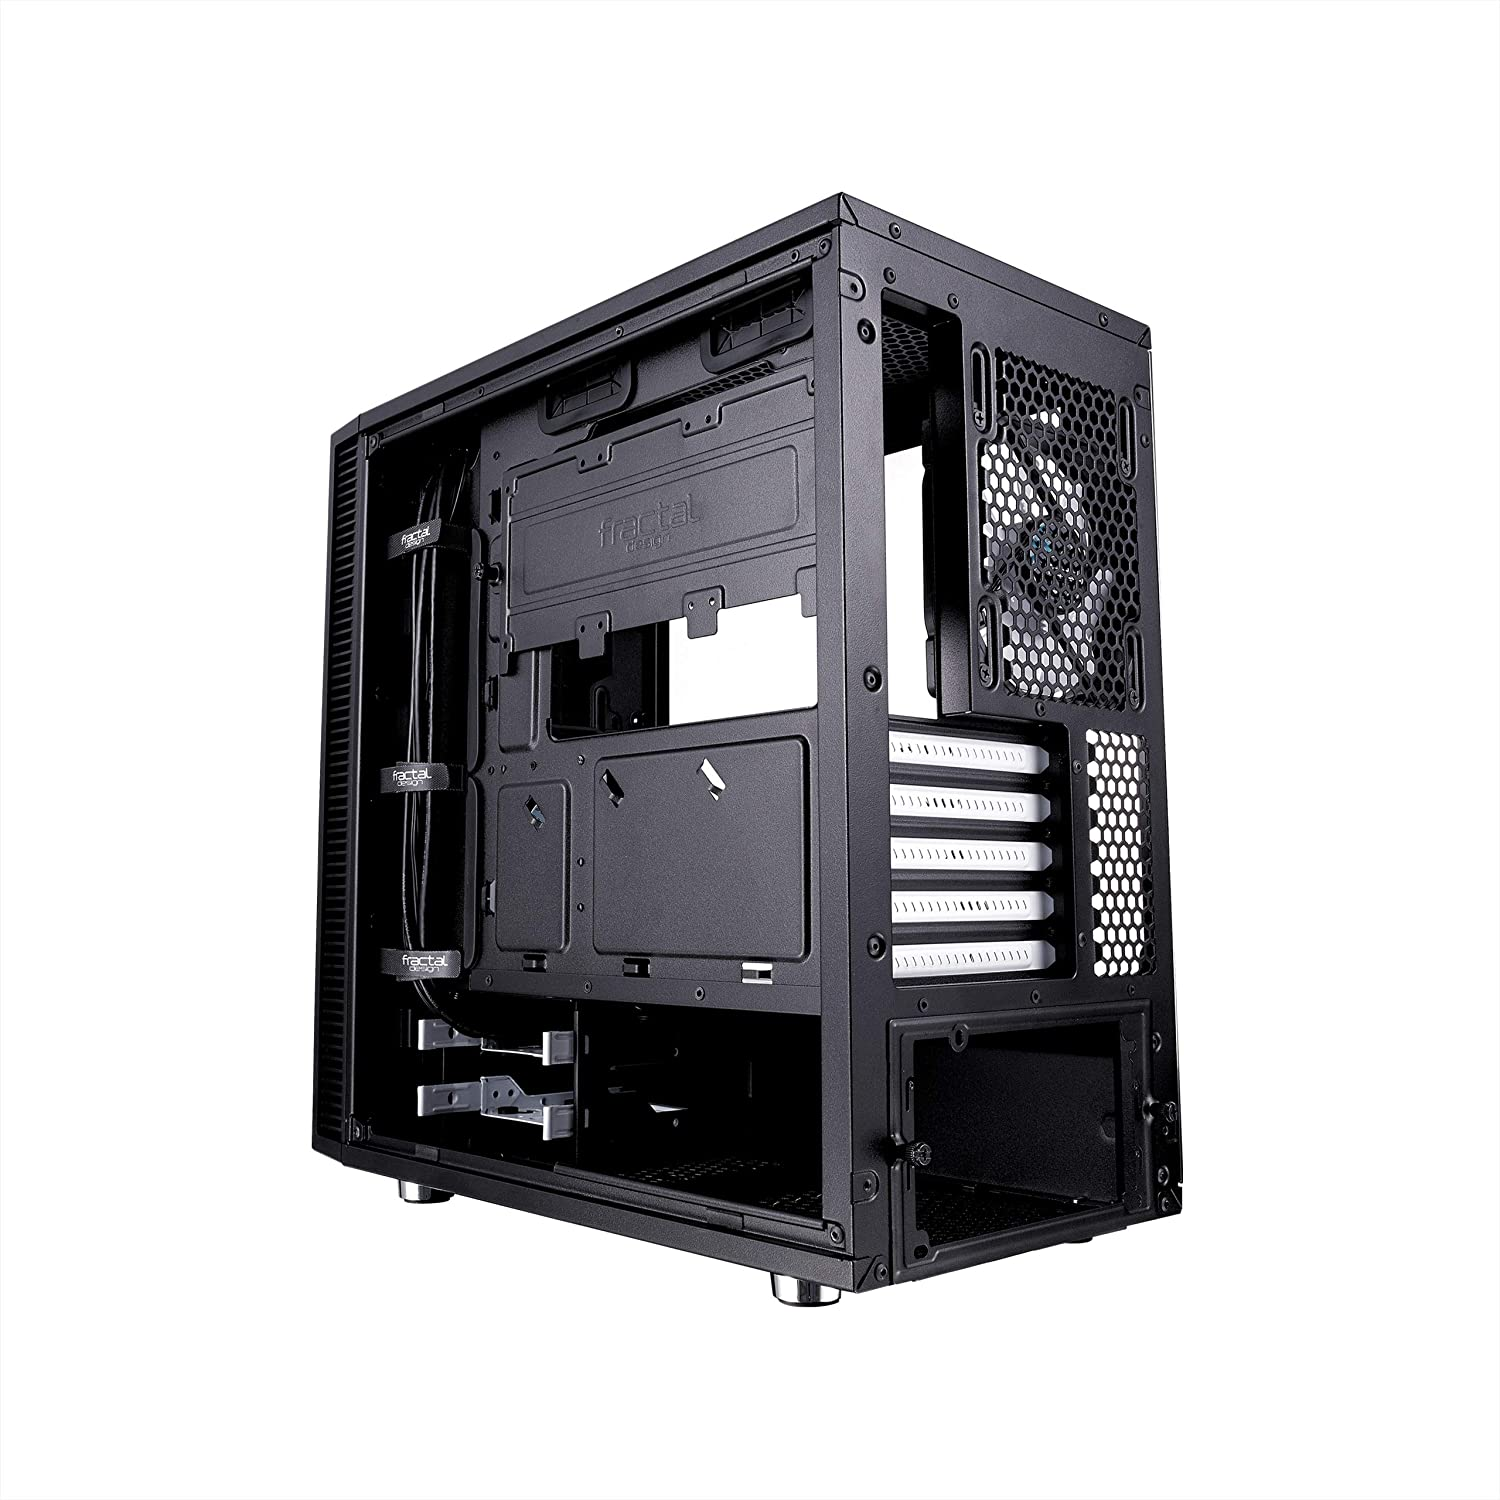 Optimized for High Airflow and Fractal Design Define Mini C Tempered Glass mATX Mini Tower Computer Case PSU Shroud 2X Fractal Design Dynamix X2 GP-12 120mm Silent Fans Included Black